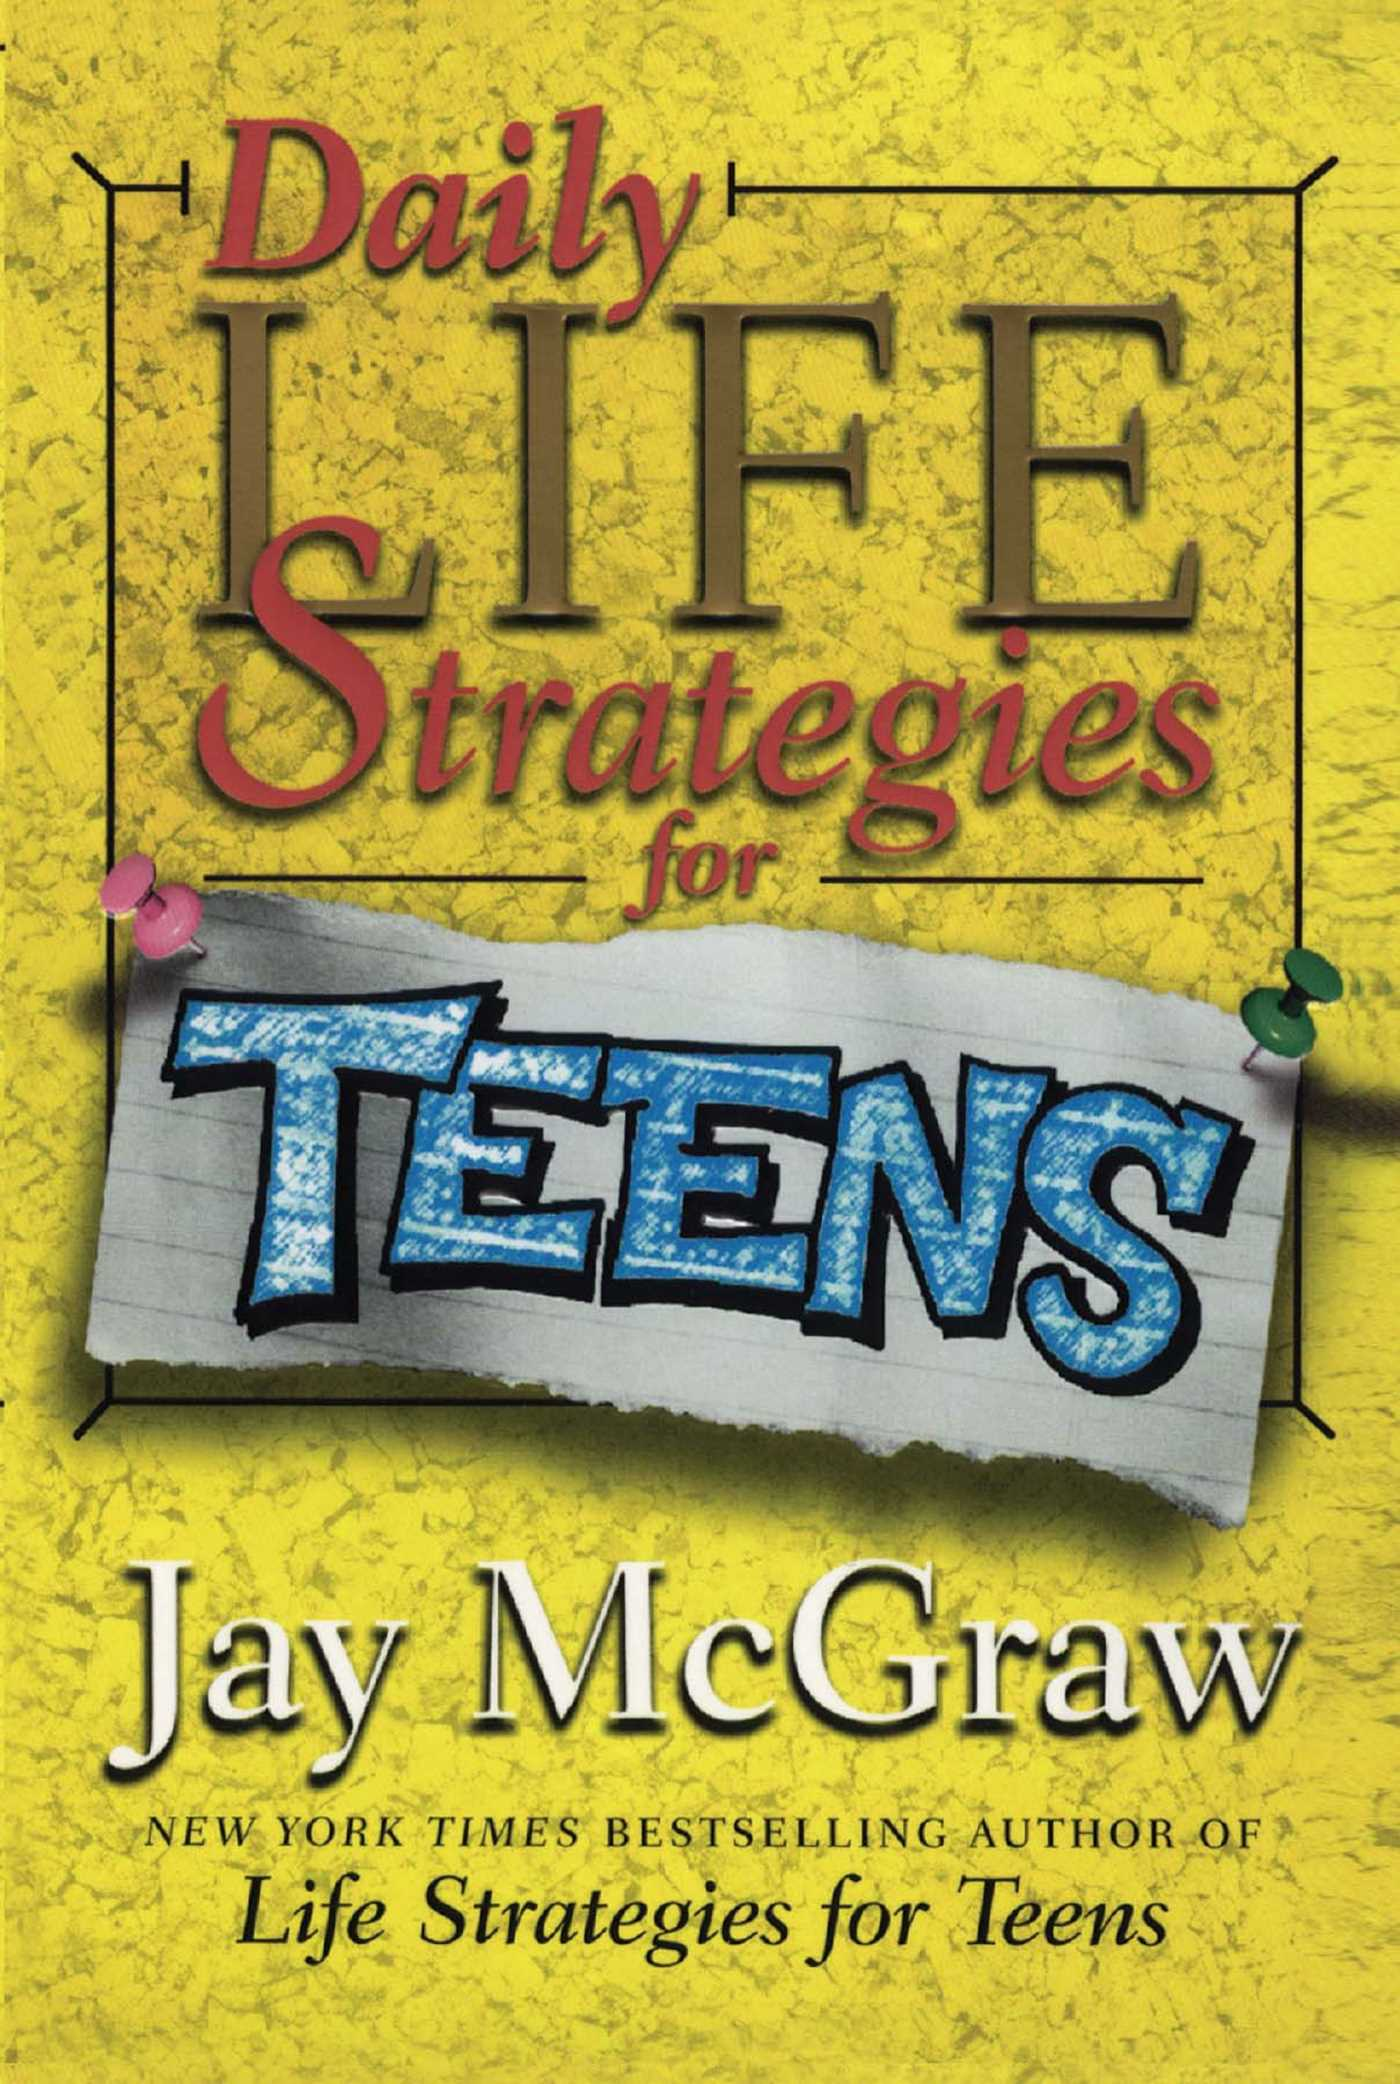 Daily life strategies for teens 9781439105023 hr